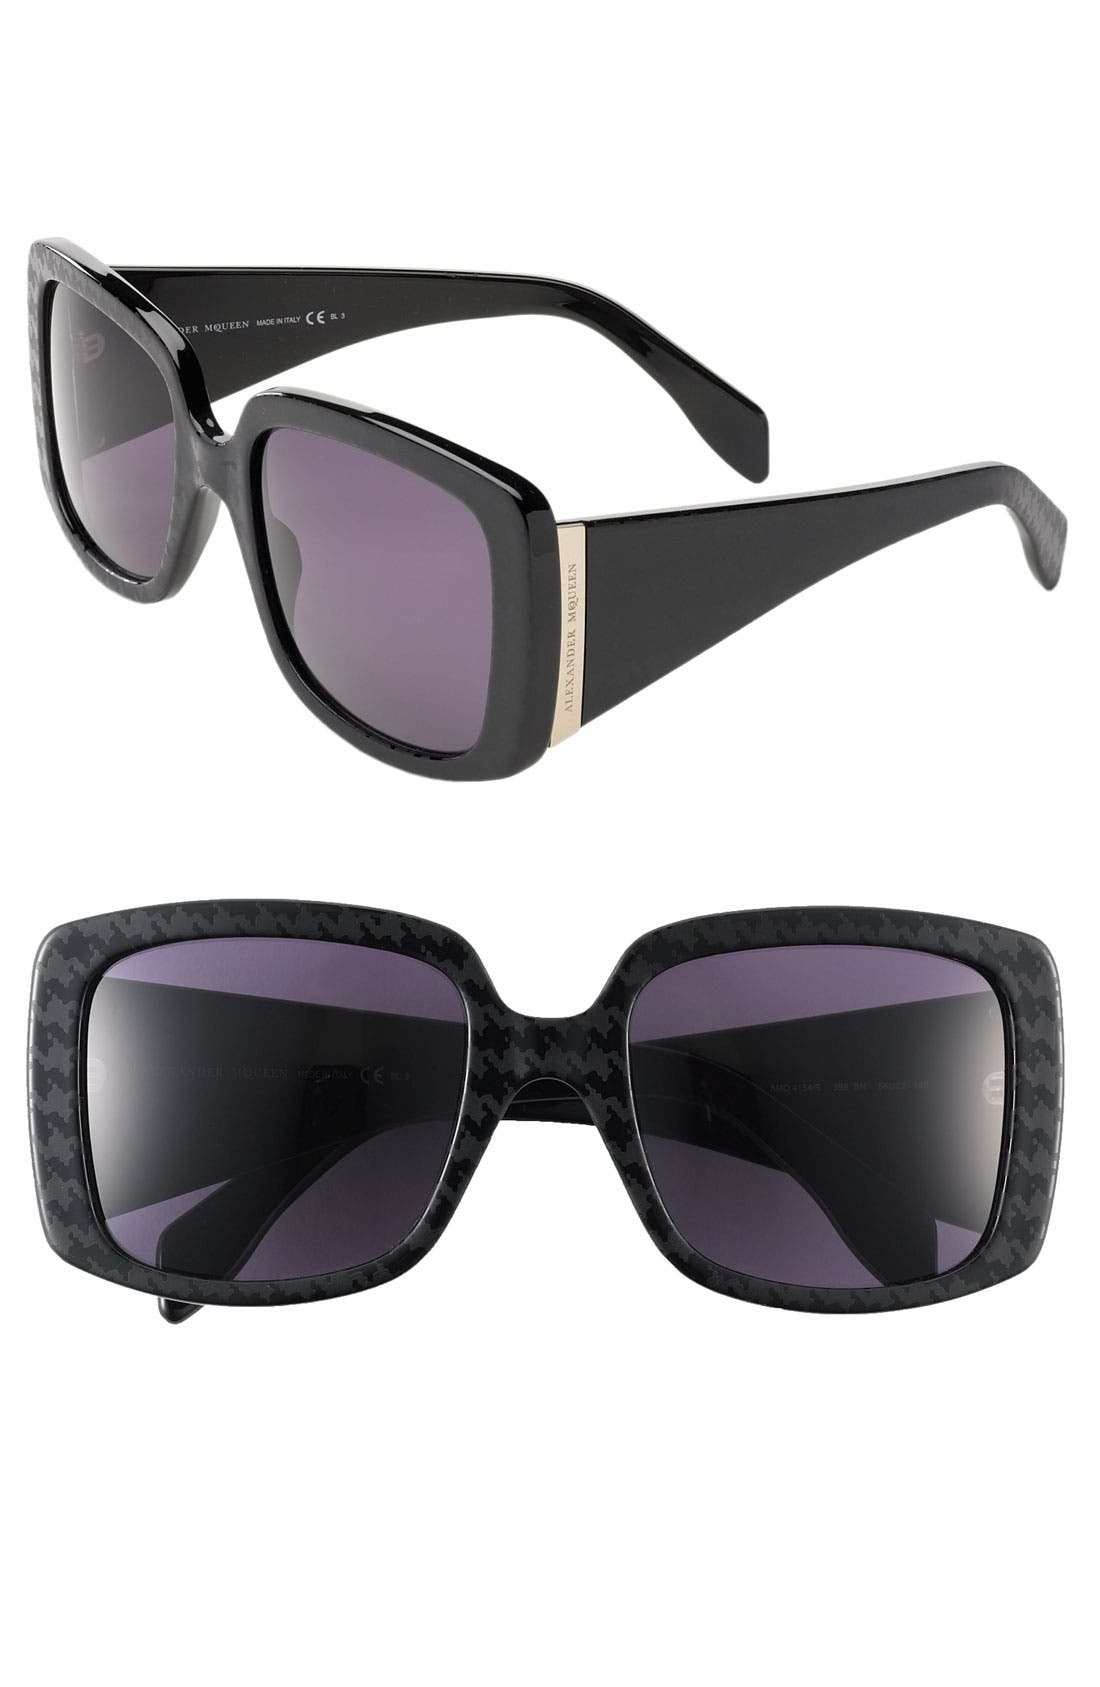 Alternate Image 1 Selected - Alexander McQueen Oversized Square Sunglasses